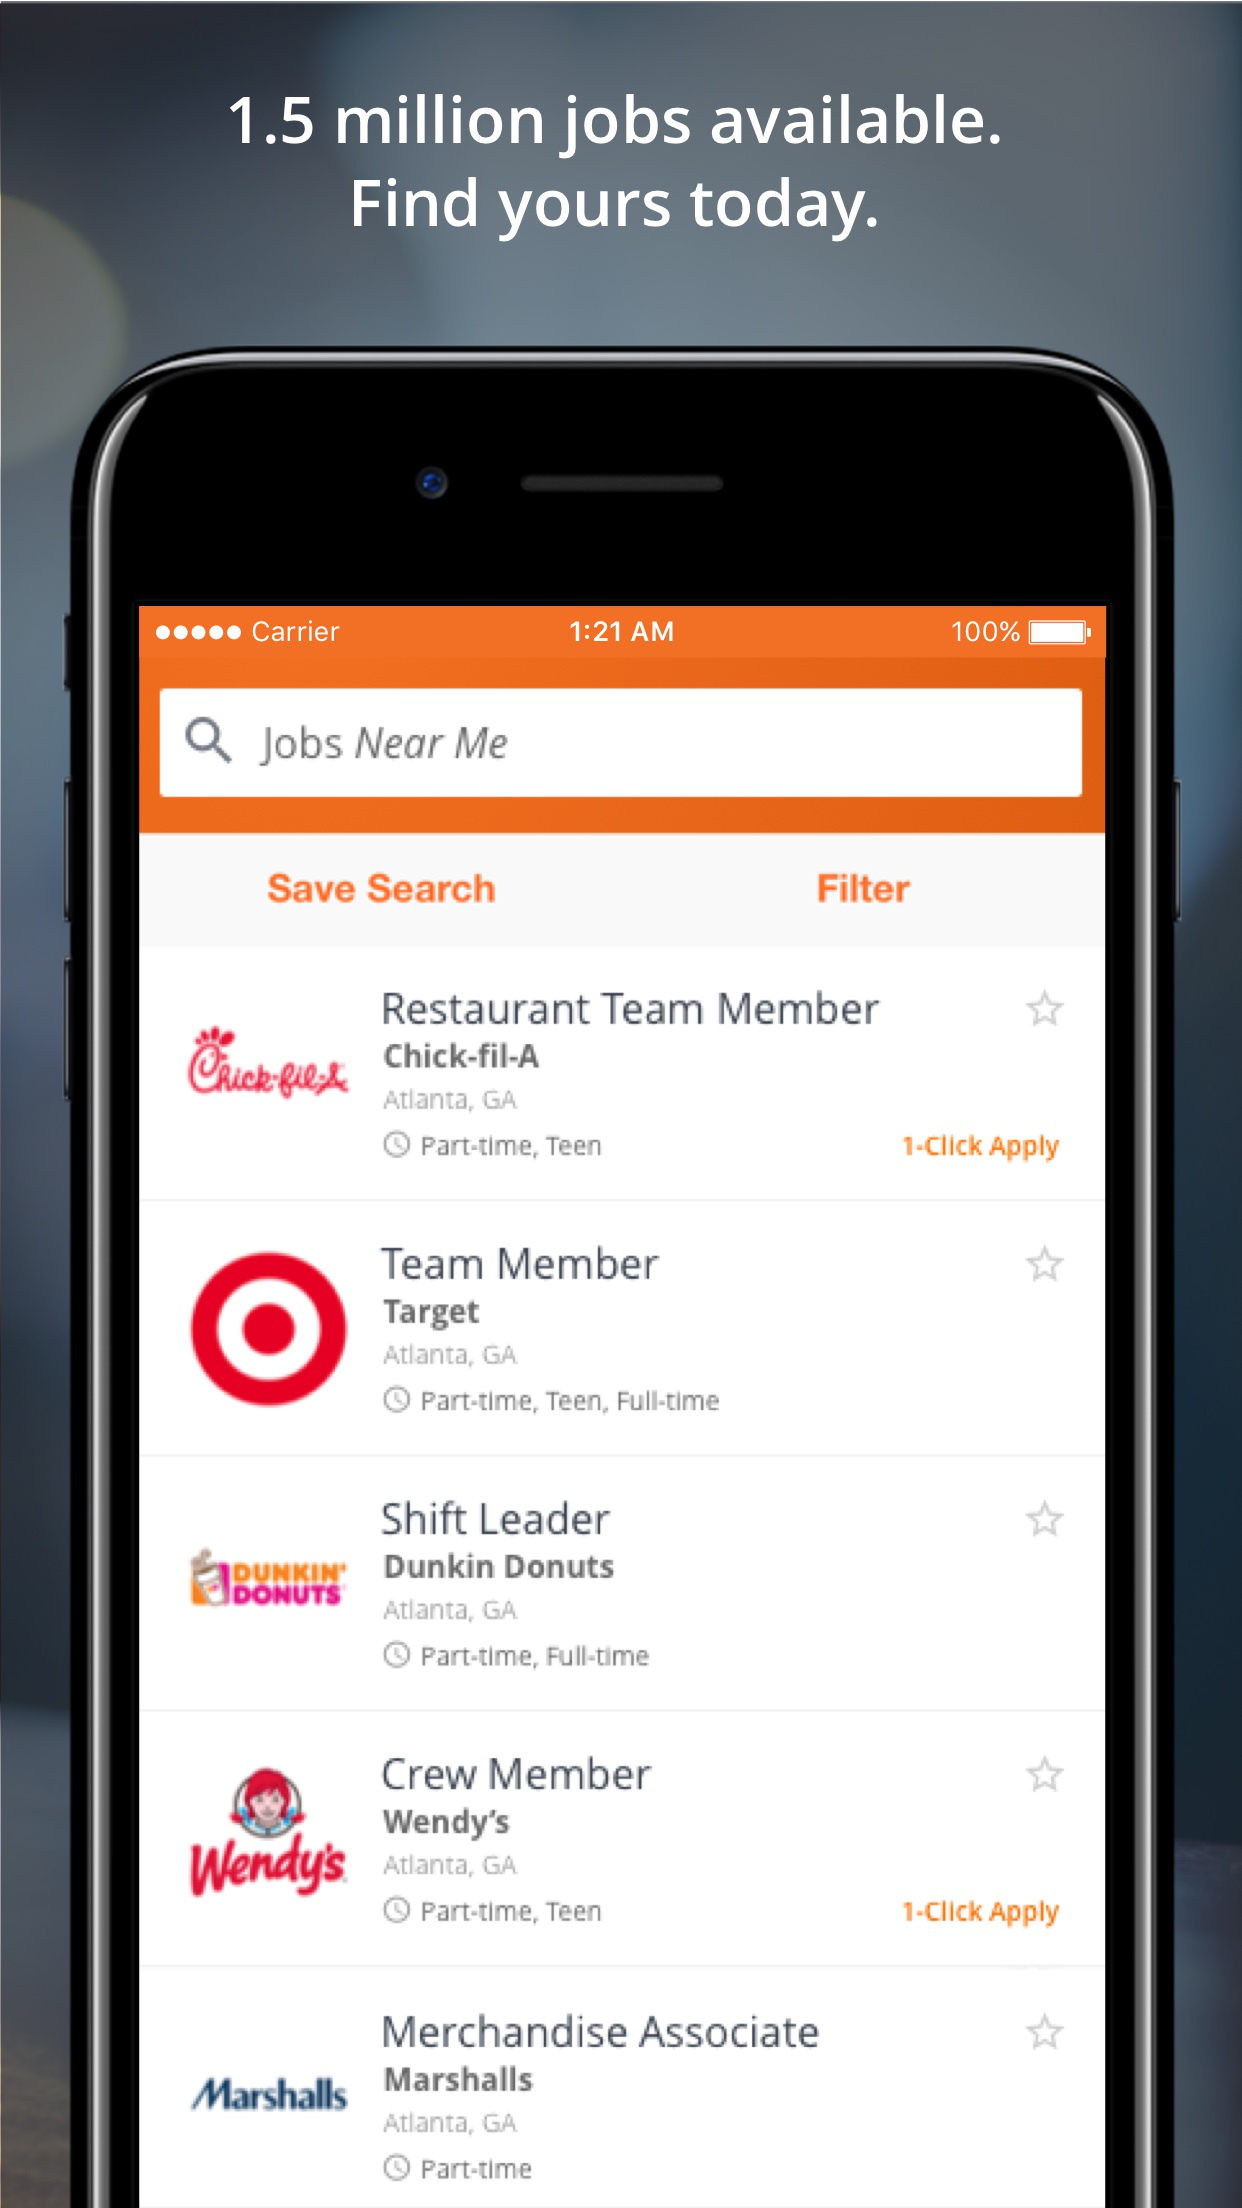 Snagajob - Search and Find Hourly Jobs Screenshot